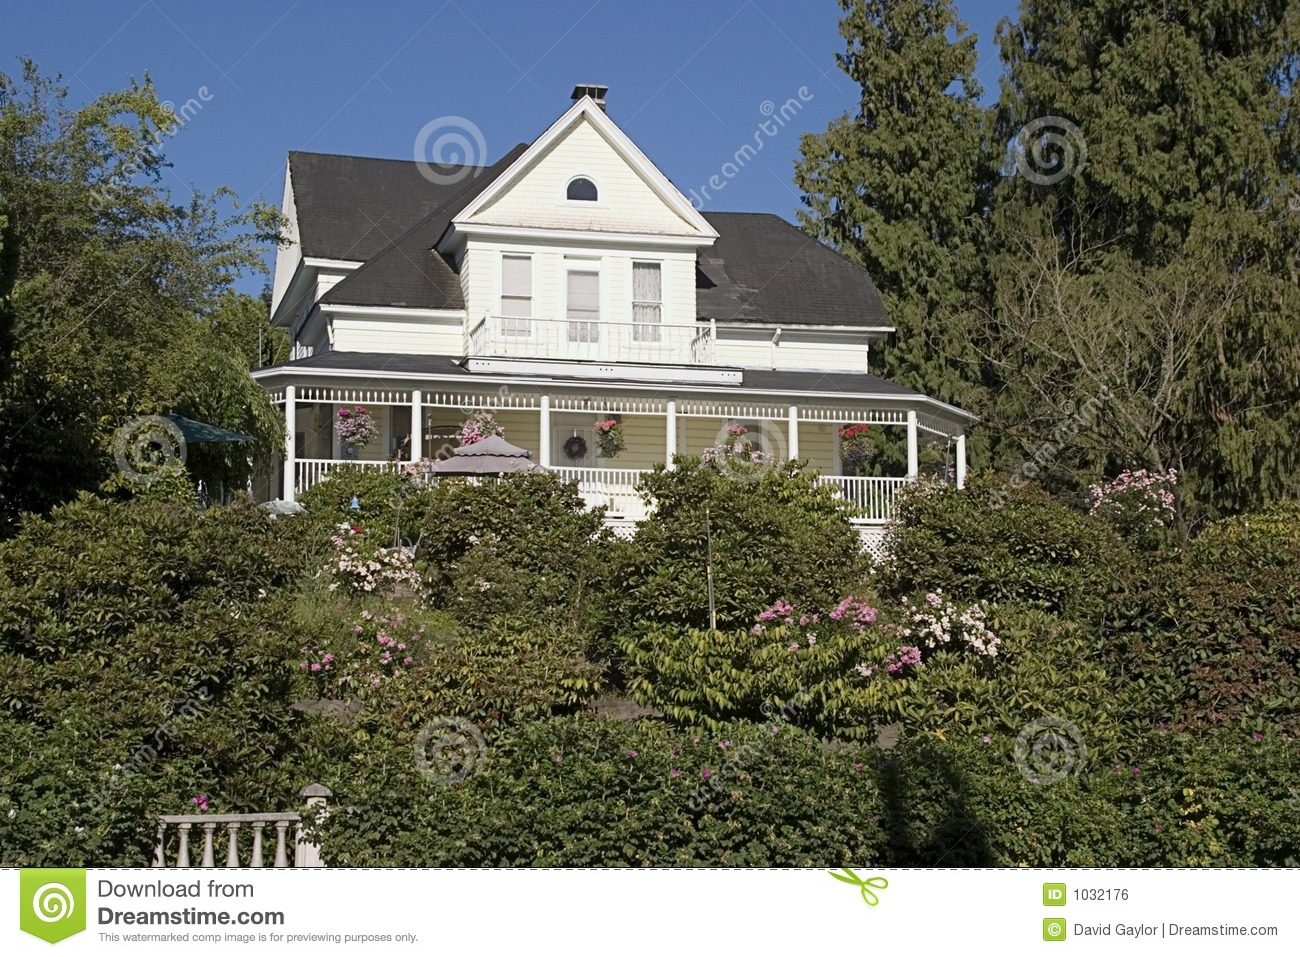 Country house royalty free stock image image 1032176 for Country house online